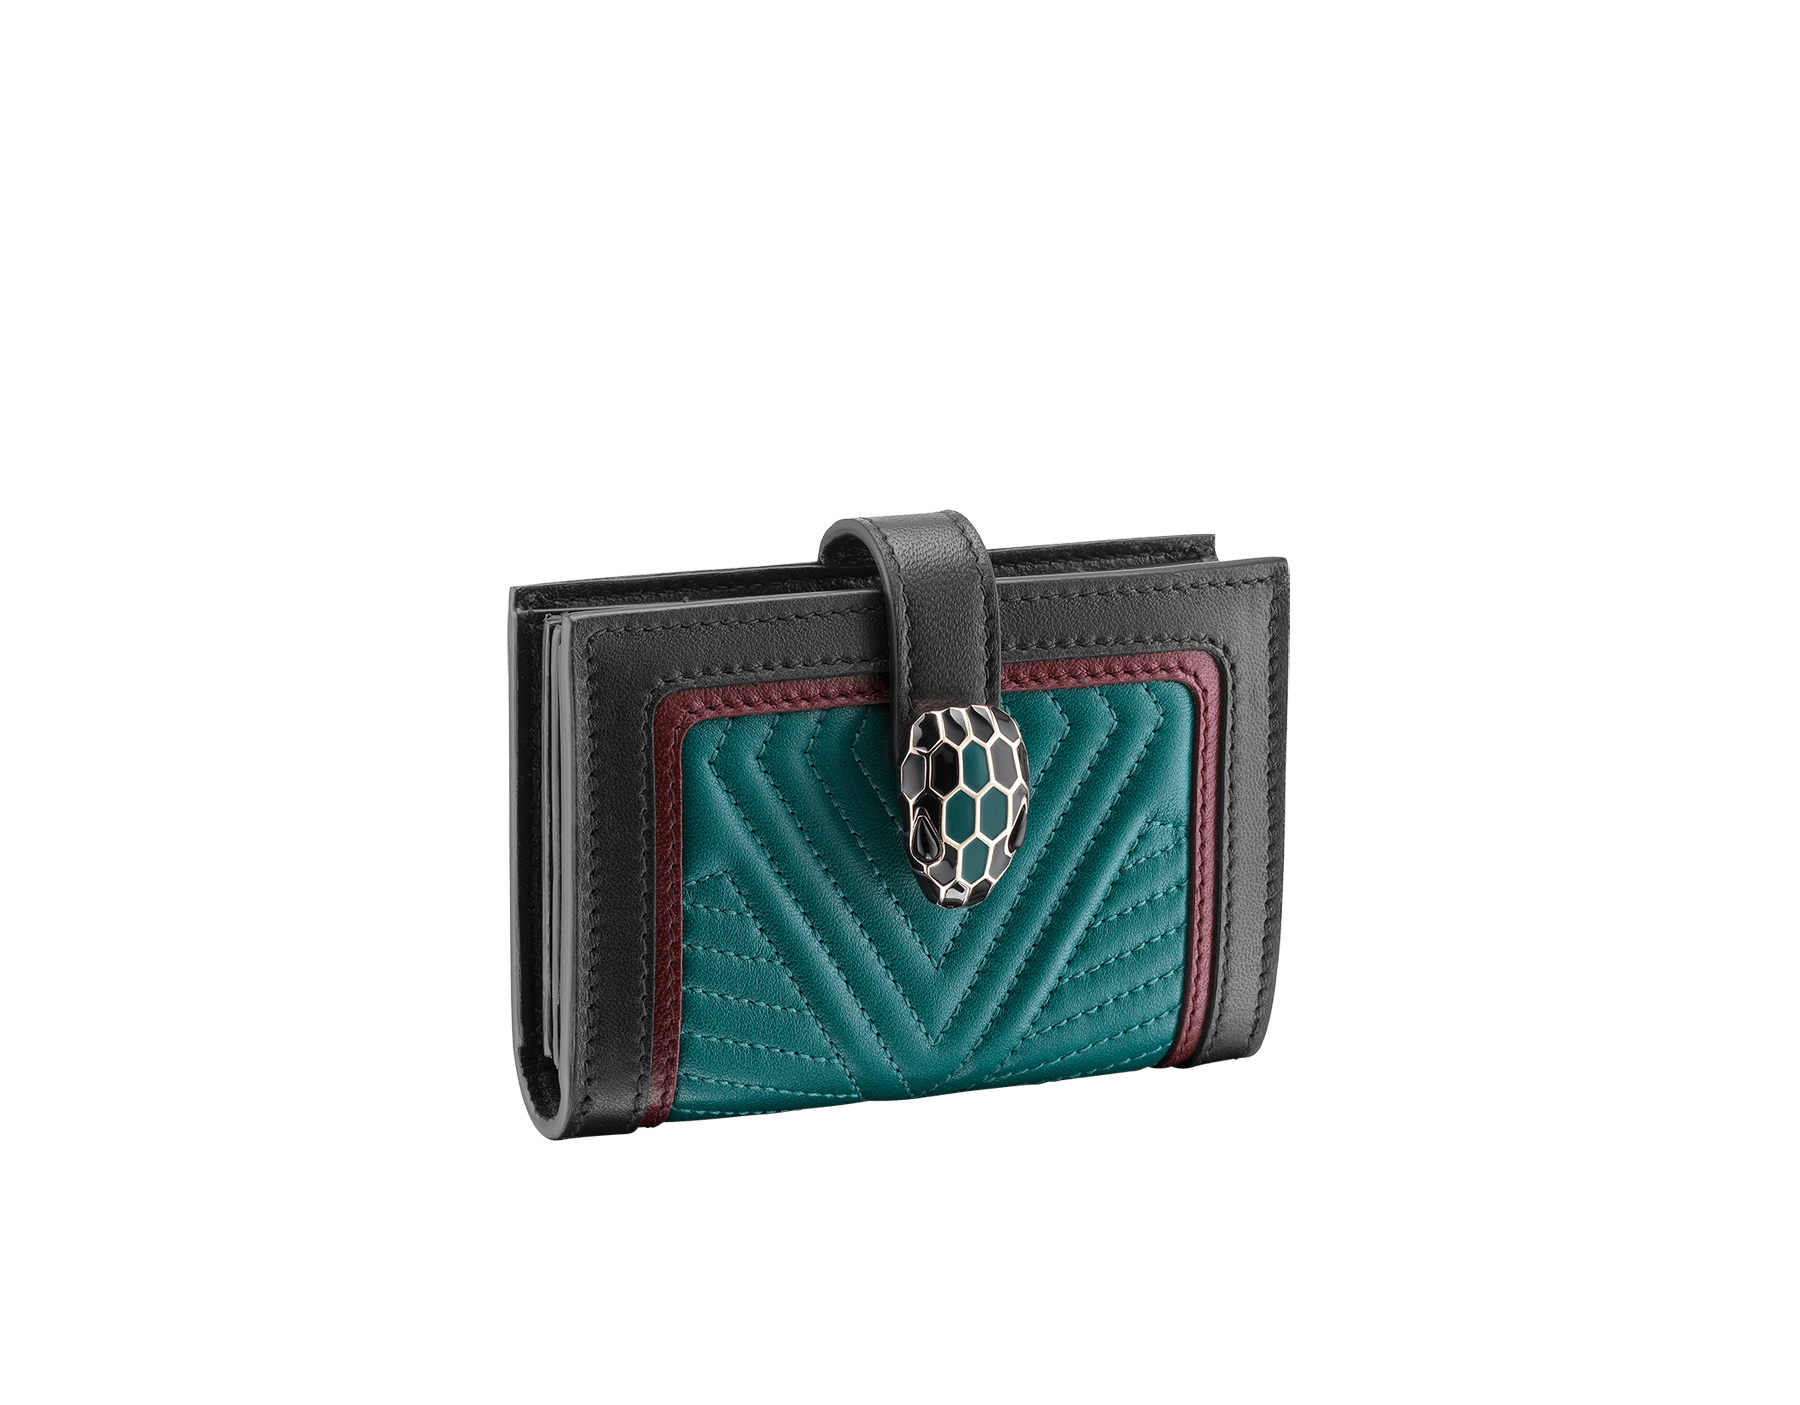 Serpenti Diamond Blast compact credit card holder in deep jade matelassè nappa leather and roman garnet and black calf leather. Iconic snakehead closure in black and deep jade enamel, with black enamel eyes. 288195 image 1